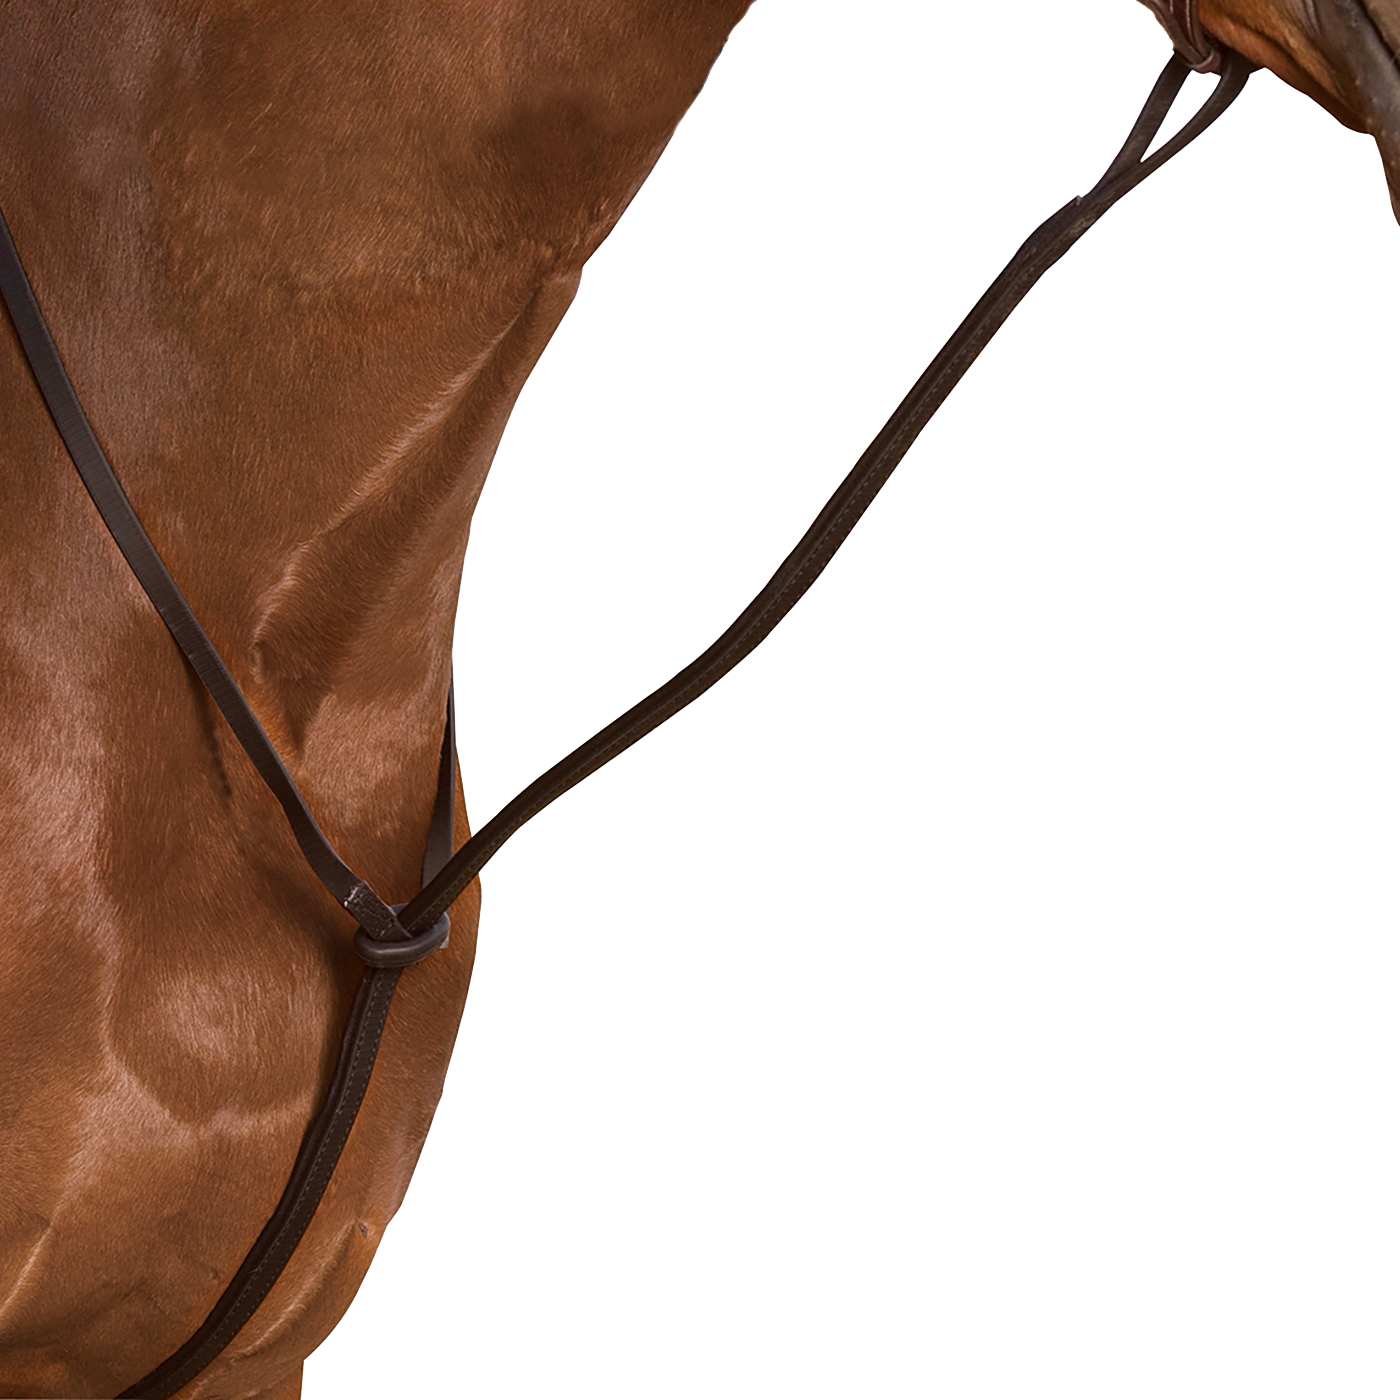 Wintec Standing Martingale - 321:30279554138200